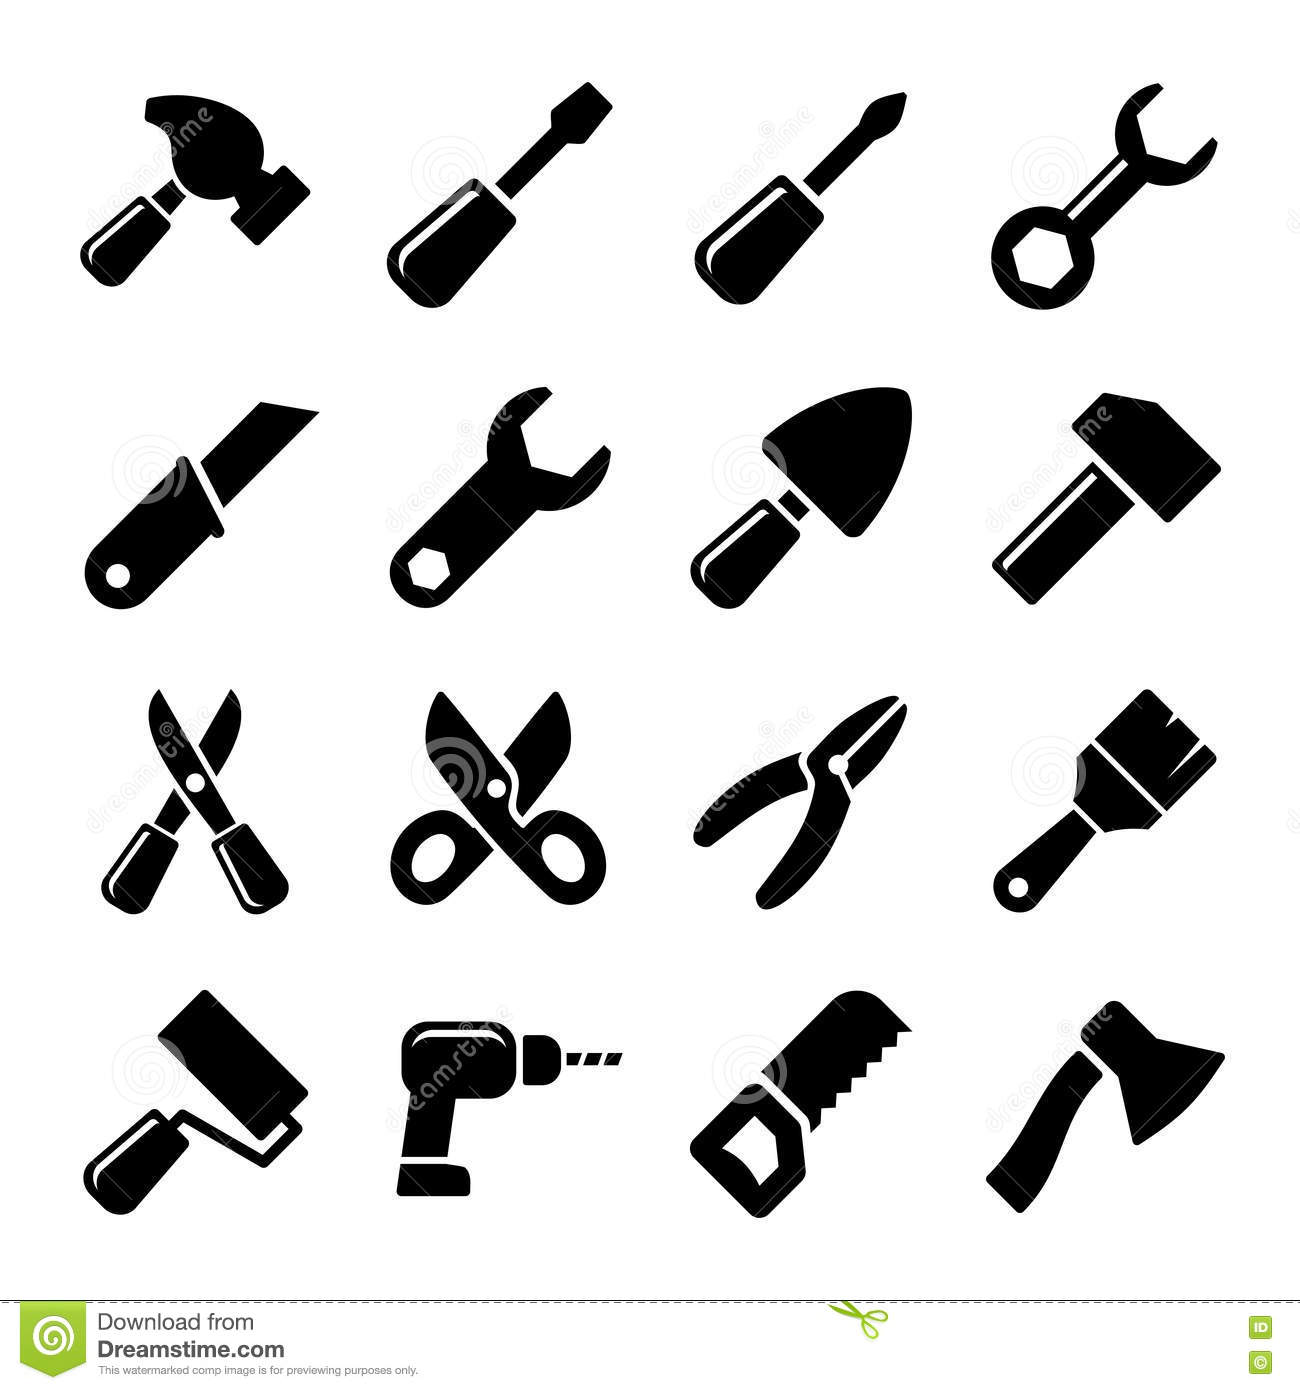 Working tools icon set stock vector. Illustration of